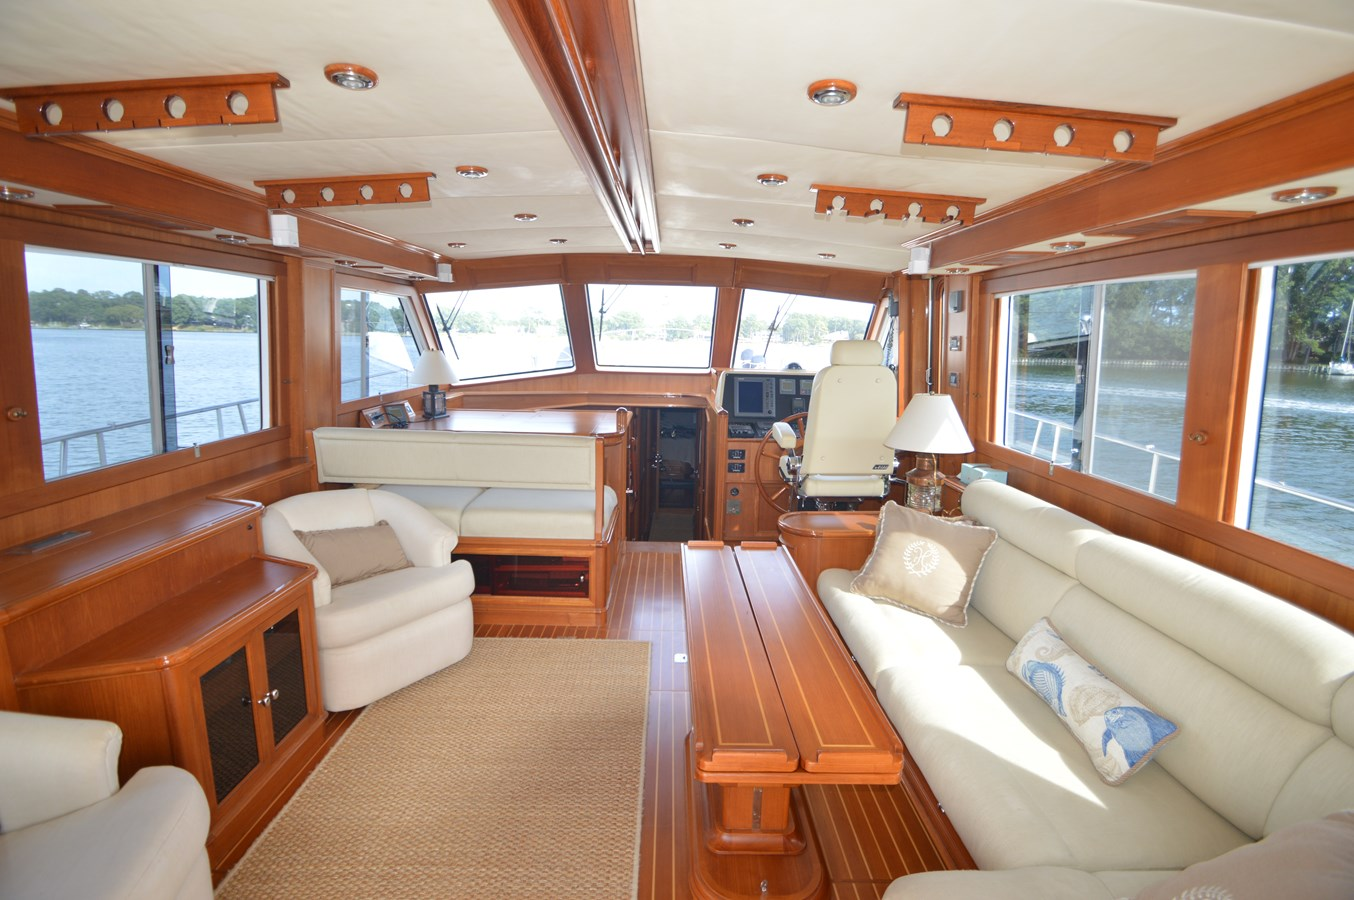 35 - 58 GRAND BANKS For Sale